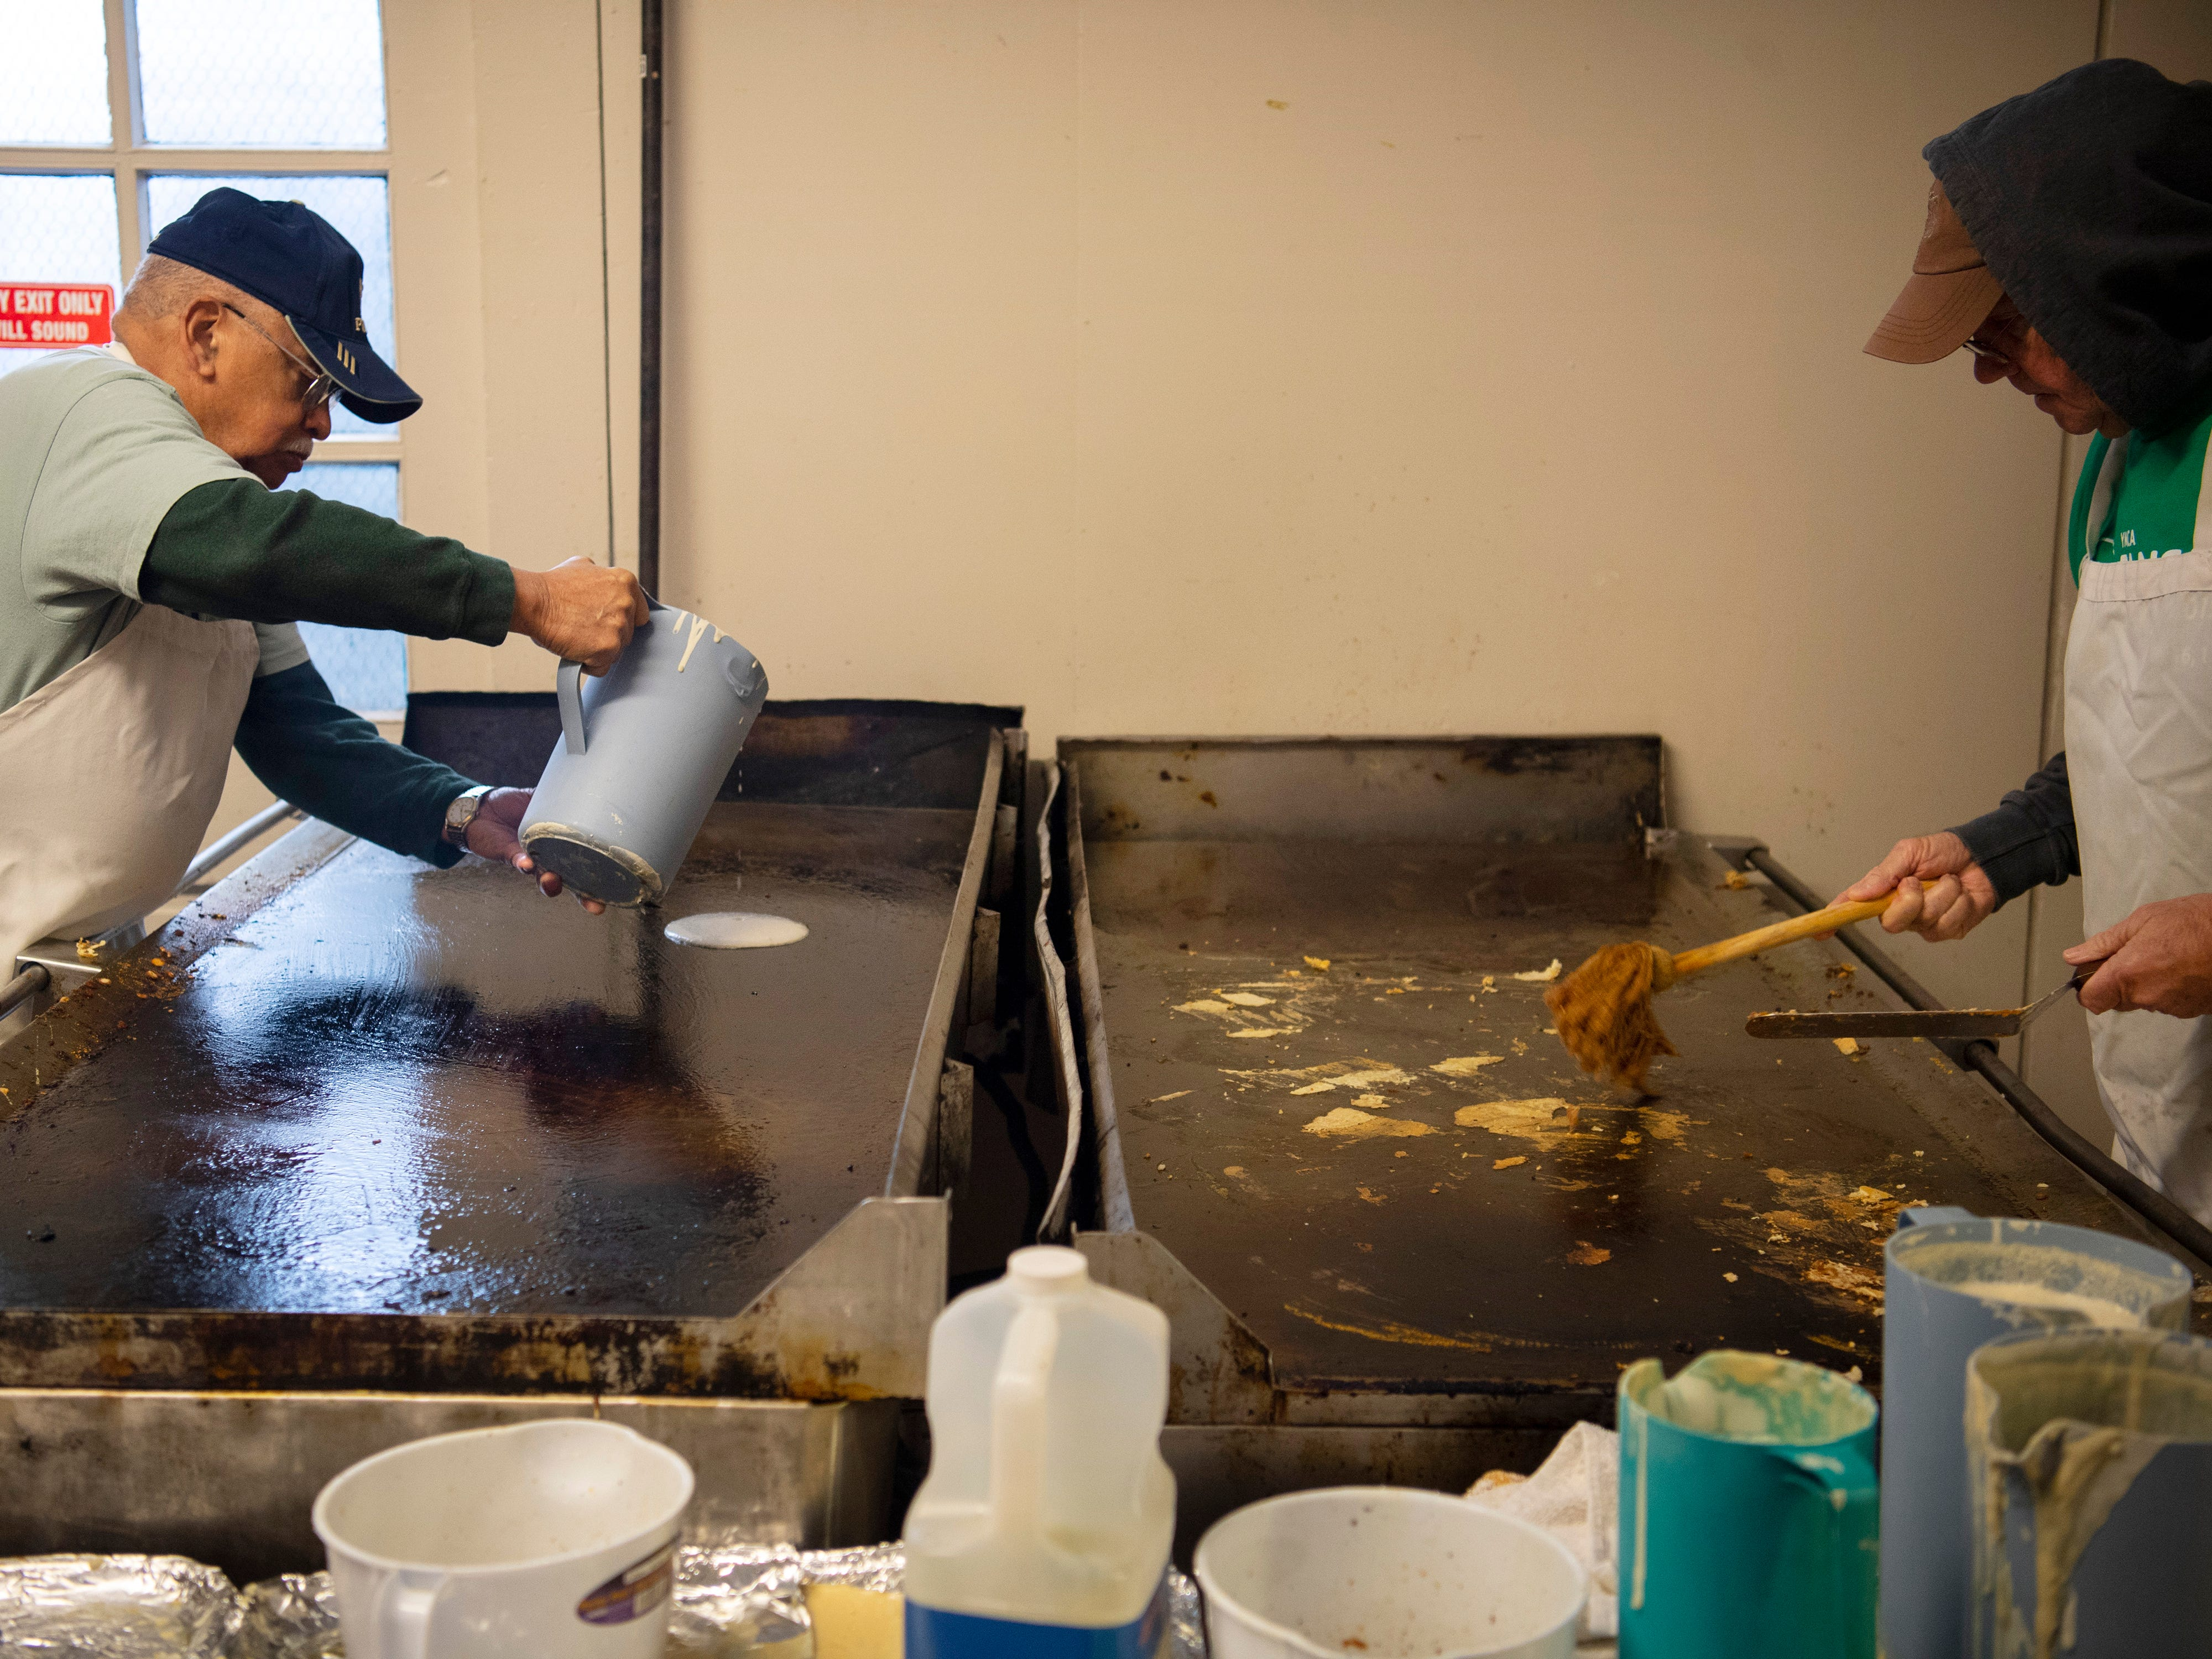 David Weir, left, and Burt King man the griddles at the 31st Annual Pancake Days at the Downtown YMCA Friday morning. The pancakes, sausage, milk, coffee and orange juice will be served up again Saturday from 6 a.m. to 1 p.m. and Sunday from 8 a.m. to 1 p.m.